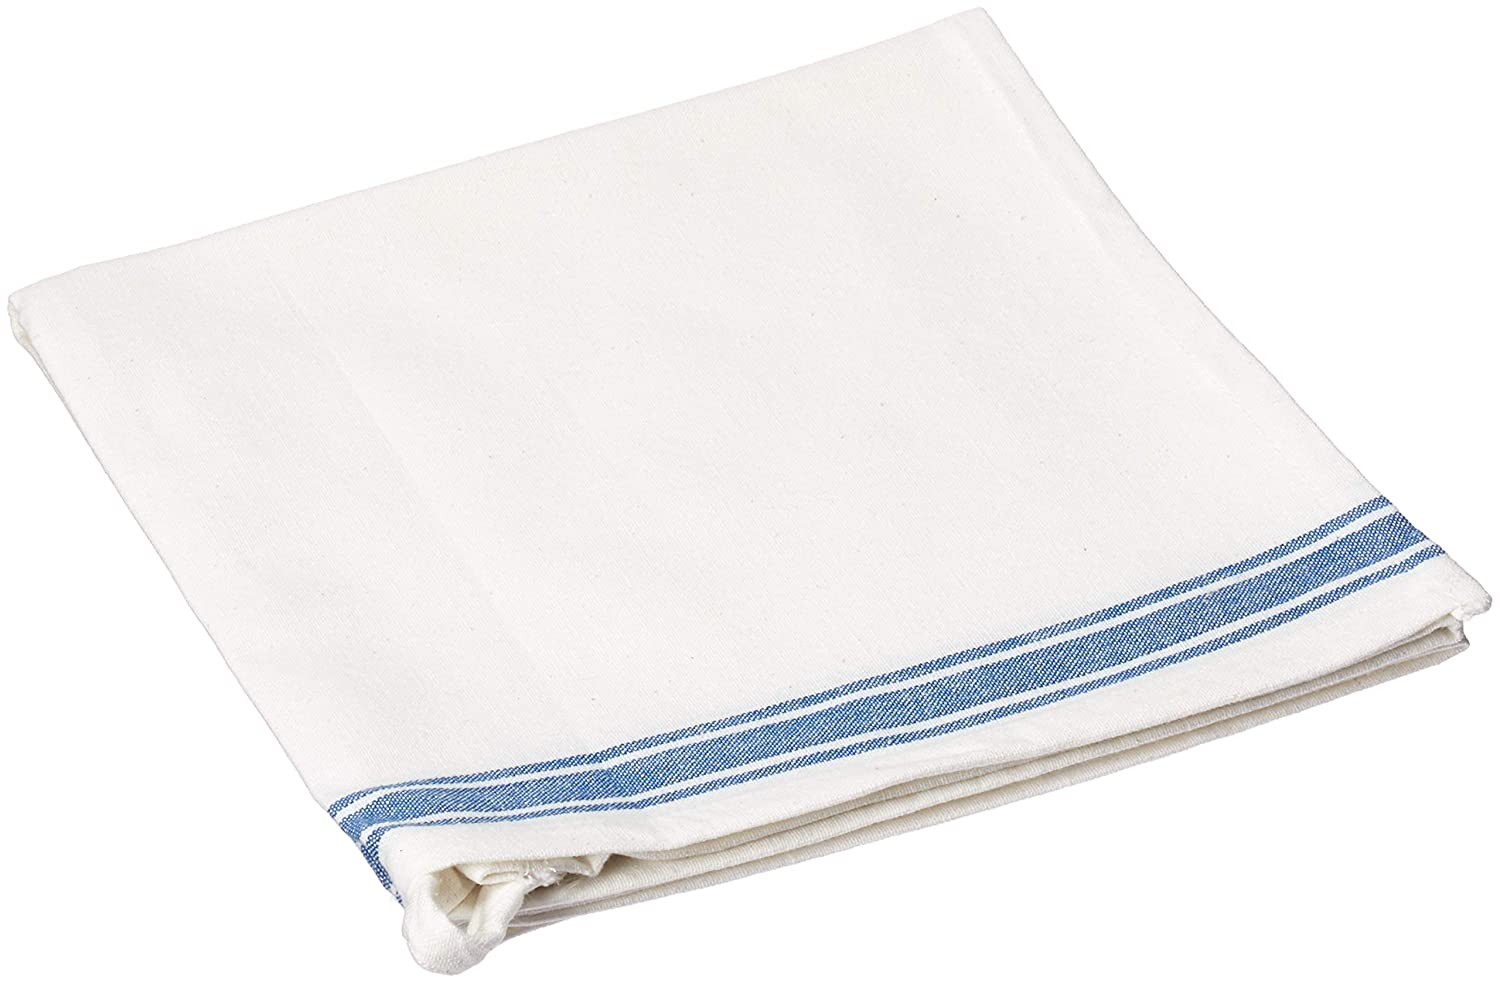 Set of 6 Liliane blue kitchen dishtowels